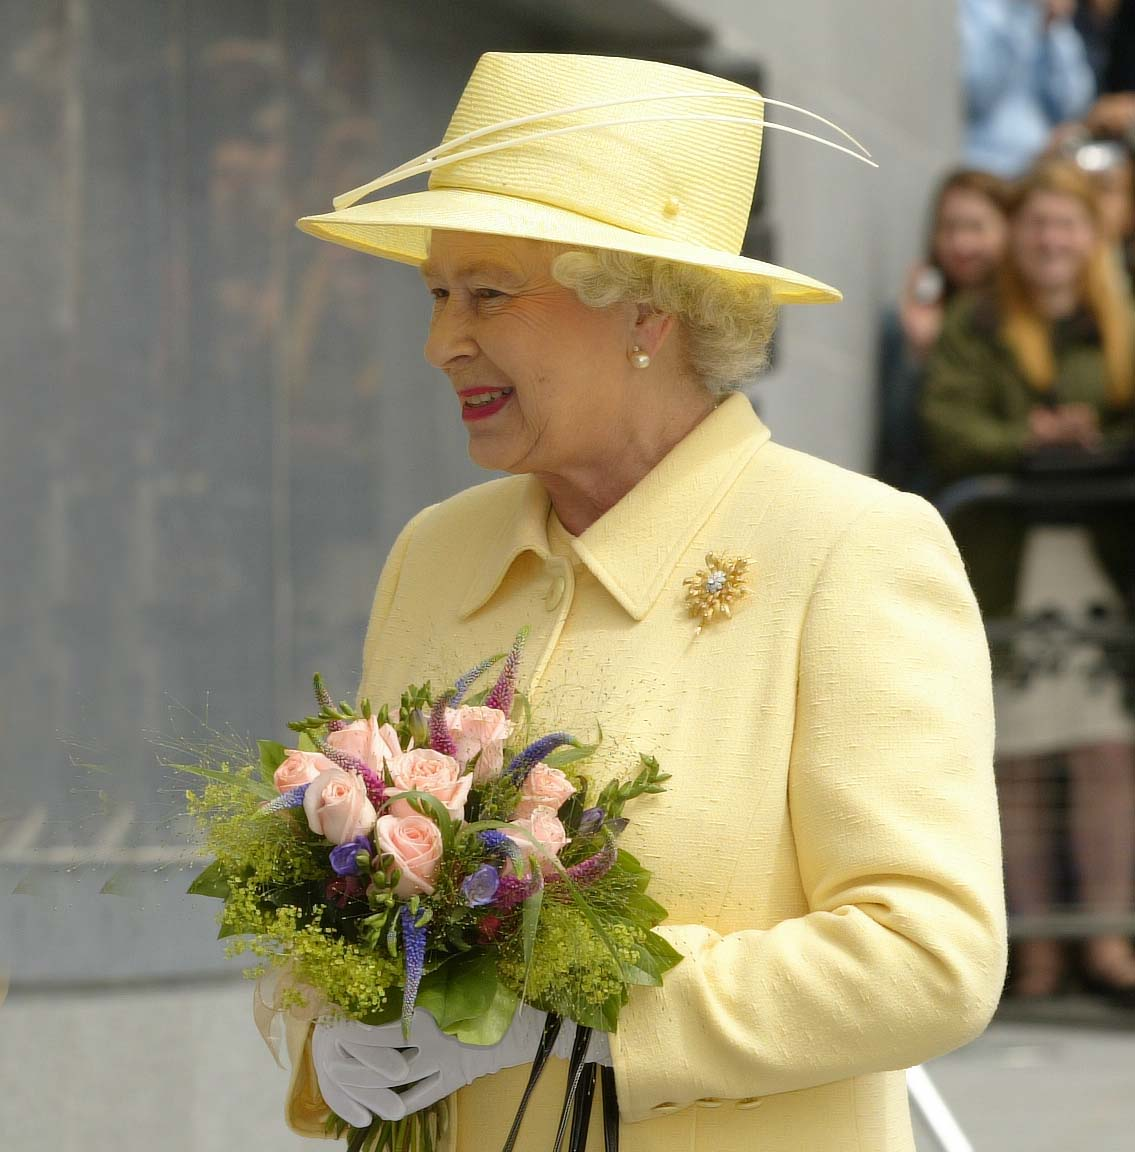 'Bomb' found in Ireland ahead of Queen Visit